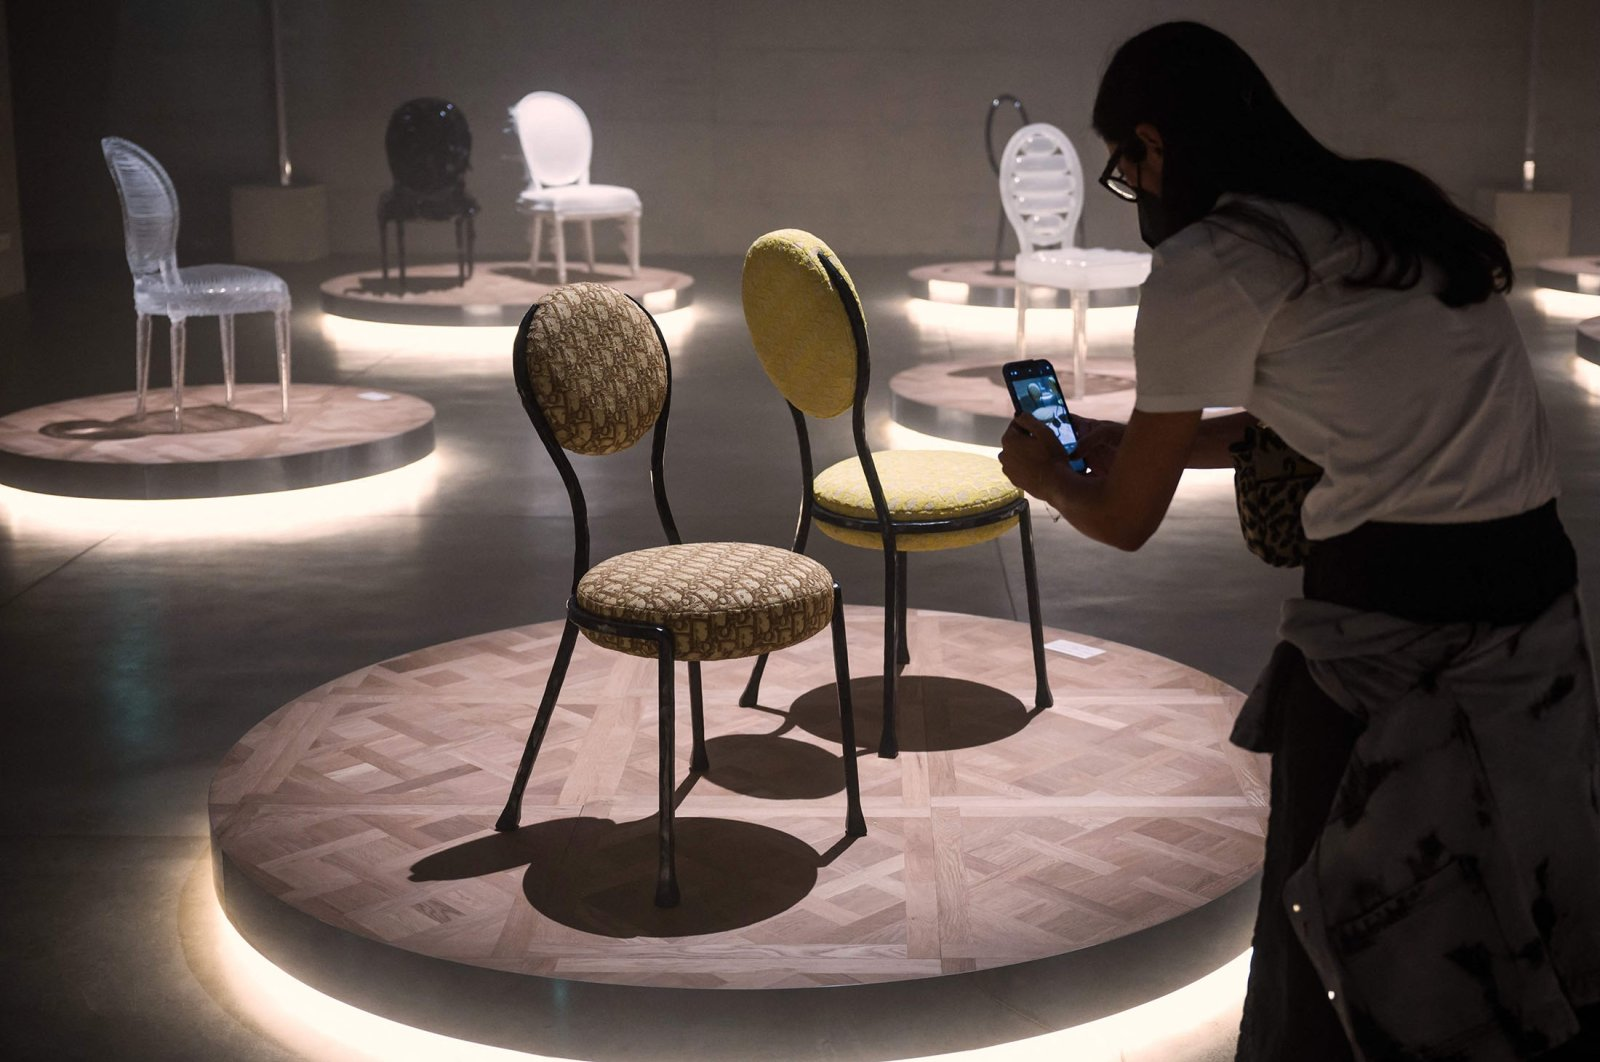 """People look at """"Monsieur et Madame Dior"""" by artist Pierre Yovanovitch displayed during the Fuorisalone 2021 design week in Palazzo Citterio, in Milan, Italy, Sept. 4, 2021. (AFP Photo)"""